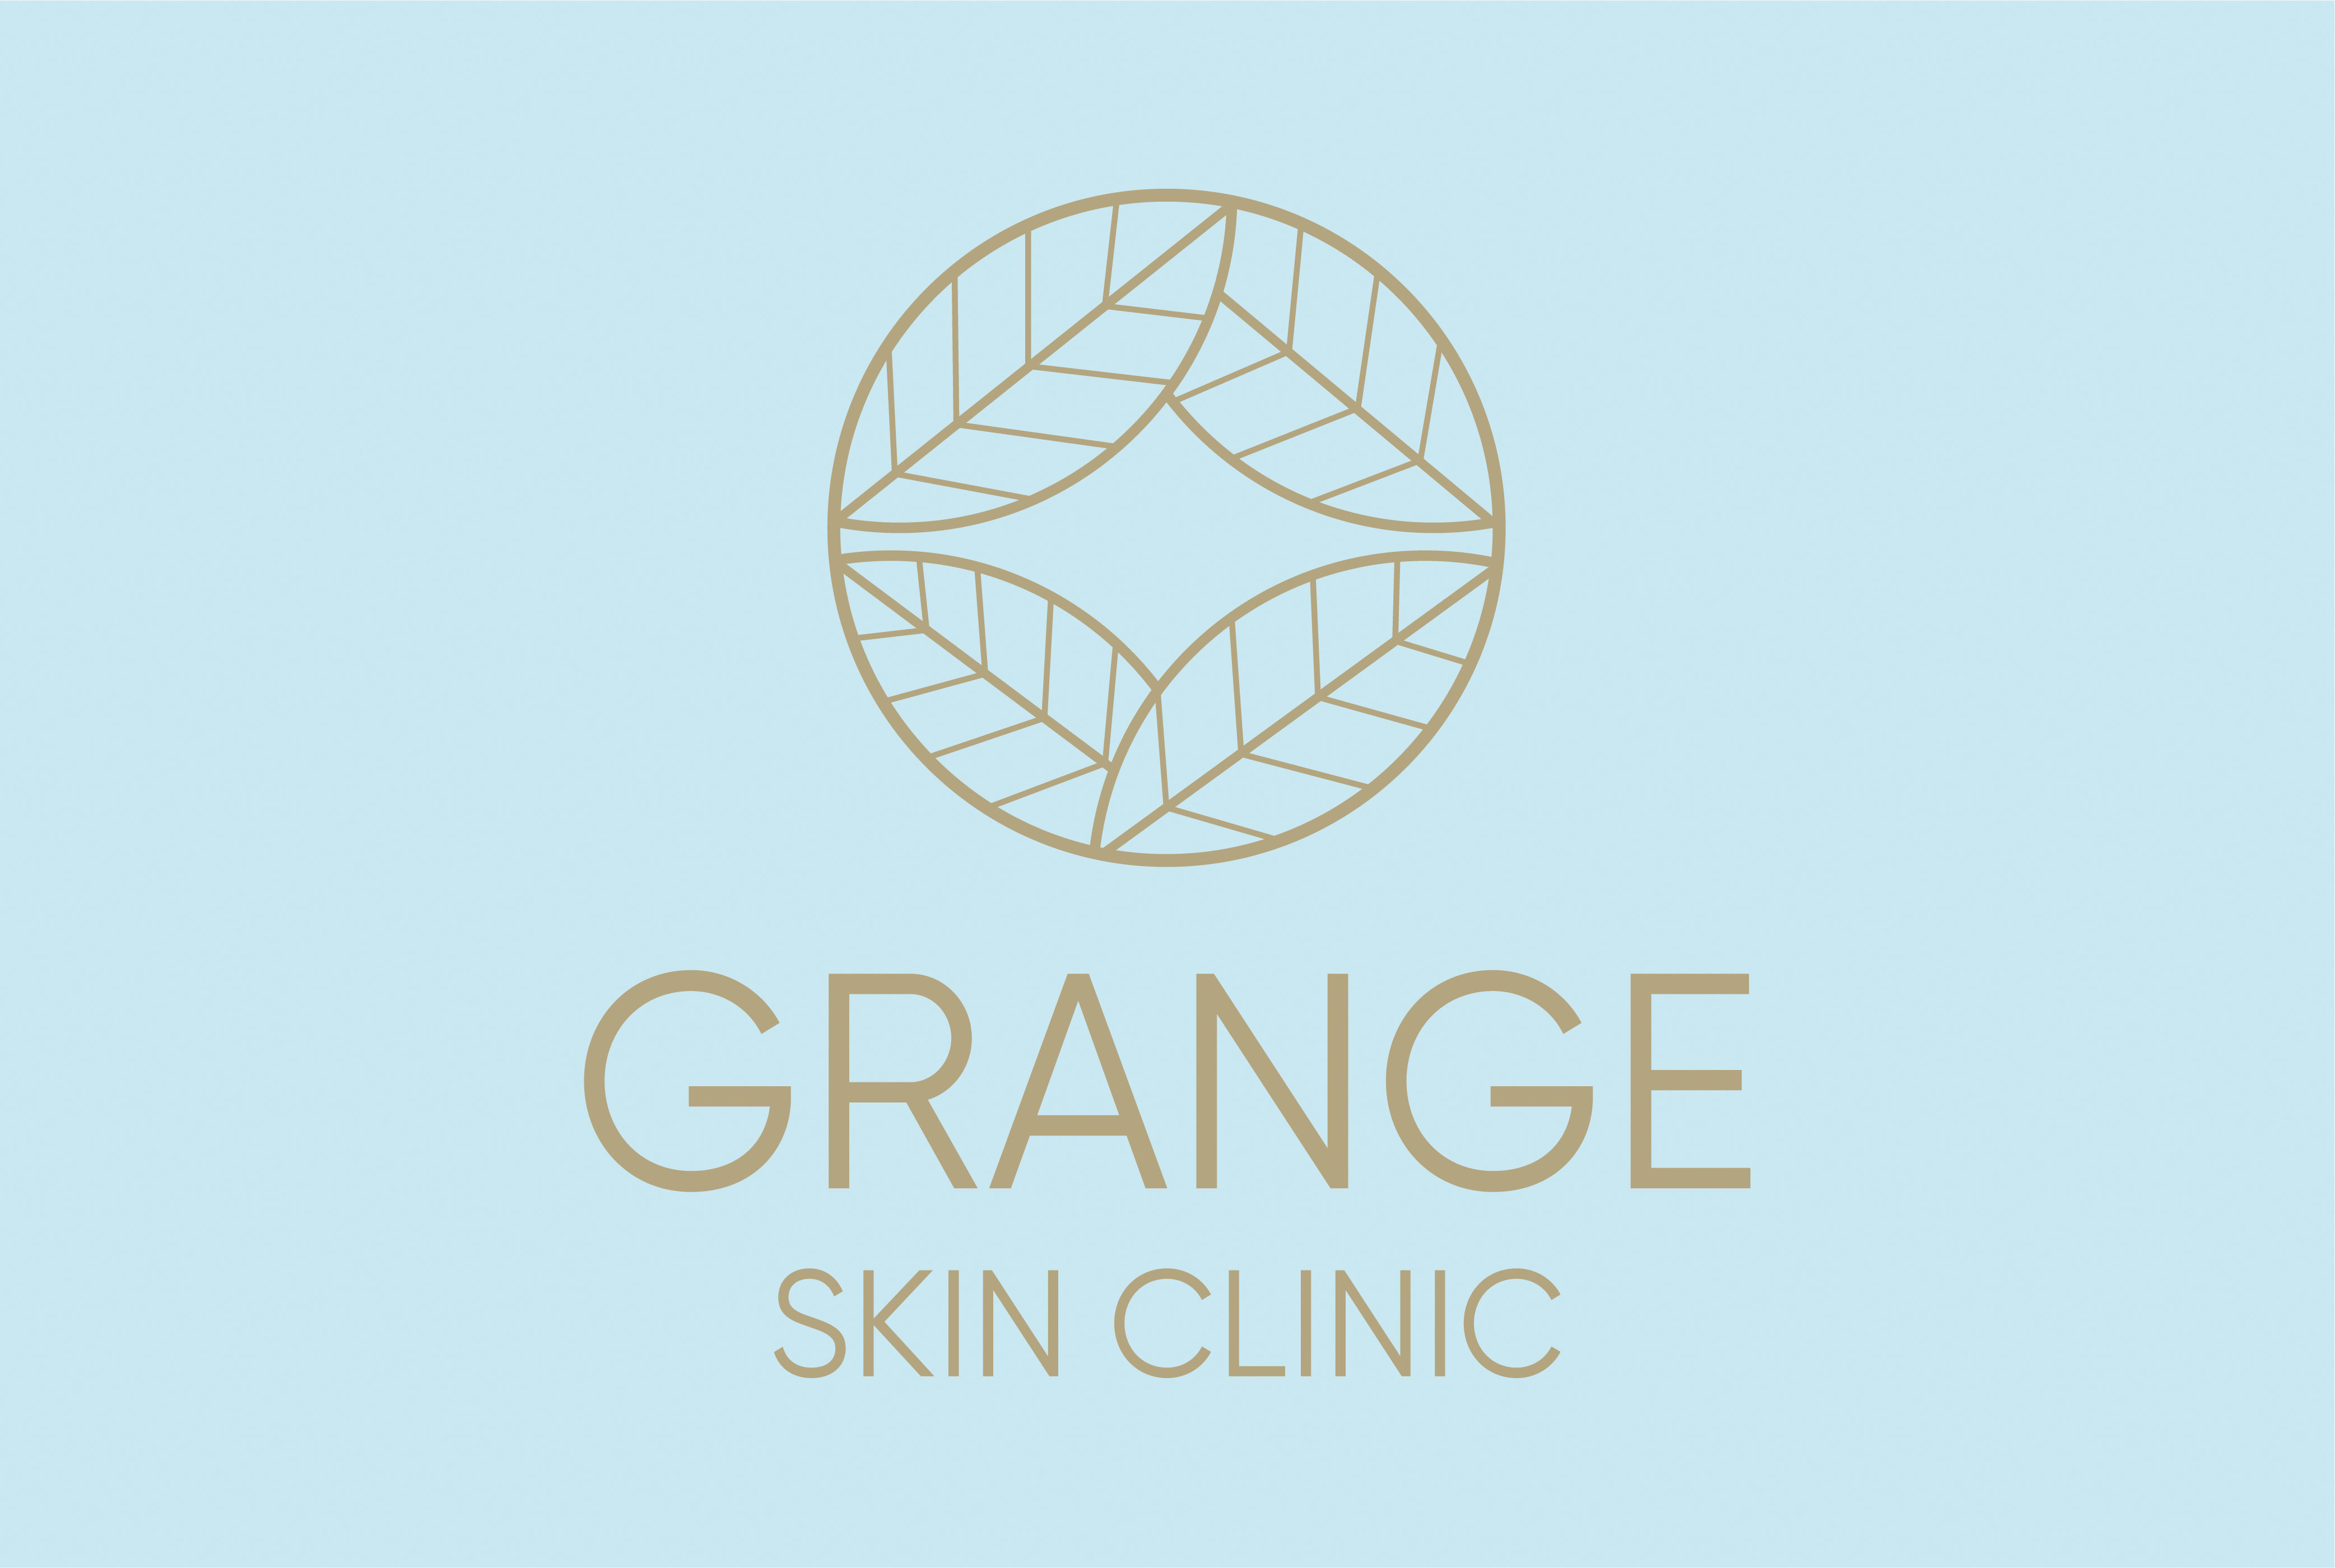 Services – Skin Clinic